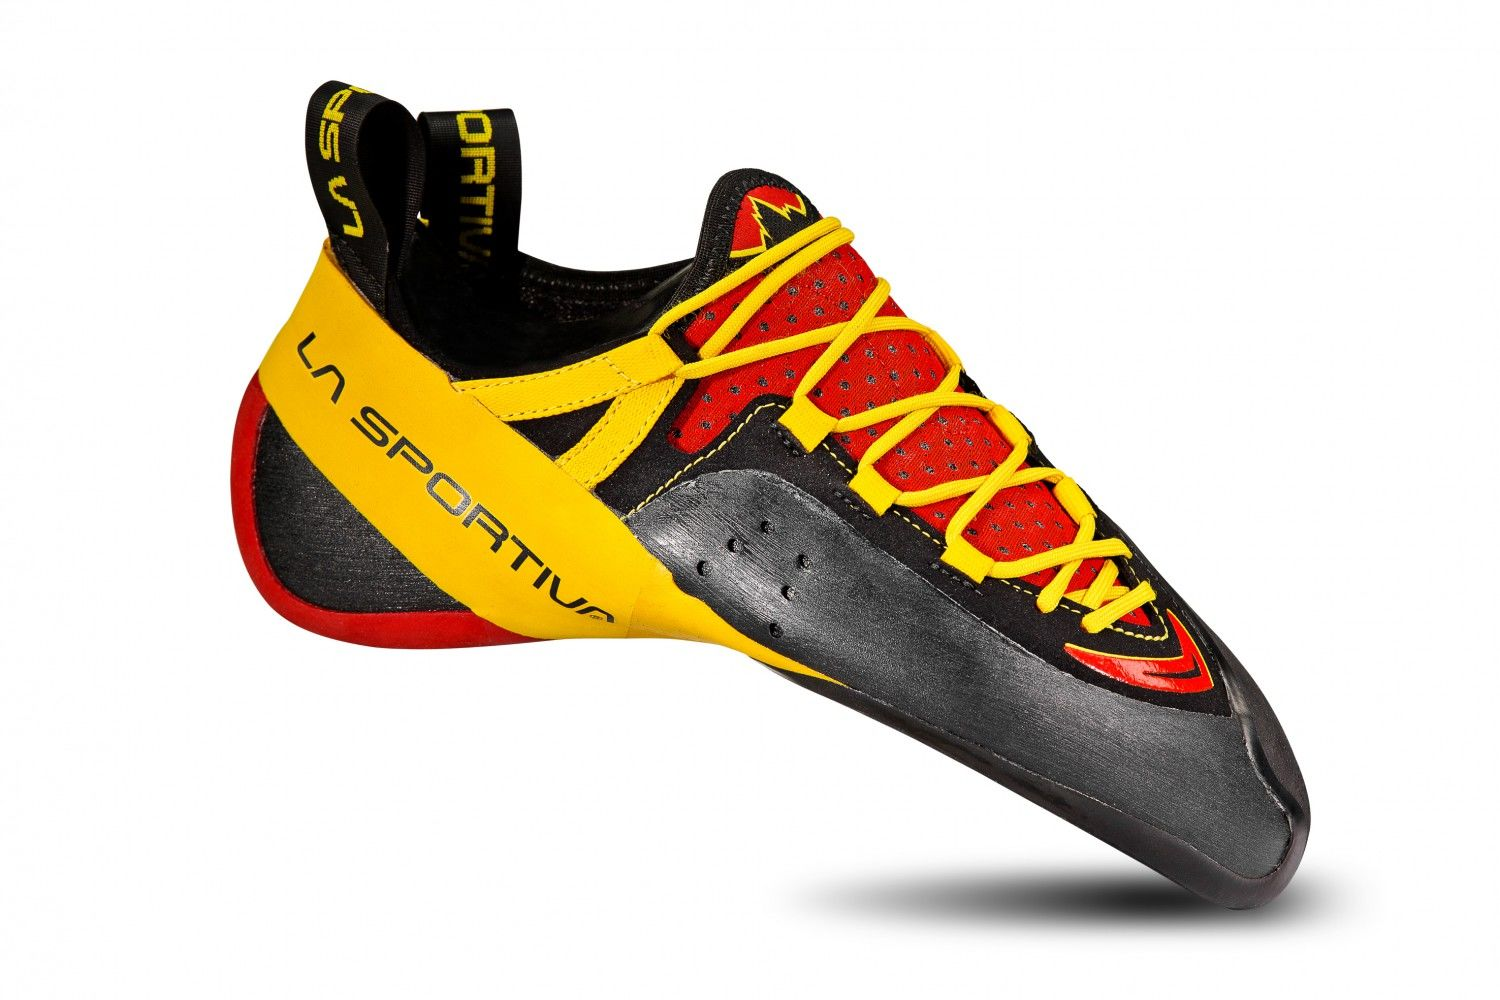 La Sportiva Genius Rot, EU 39 -Farbe Red -Yellow, 39